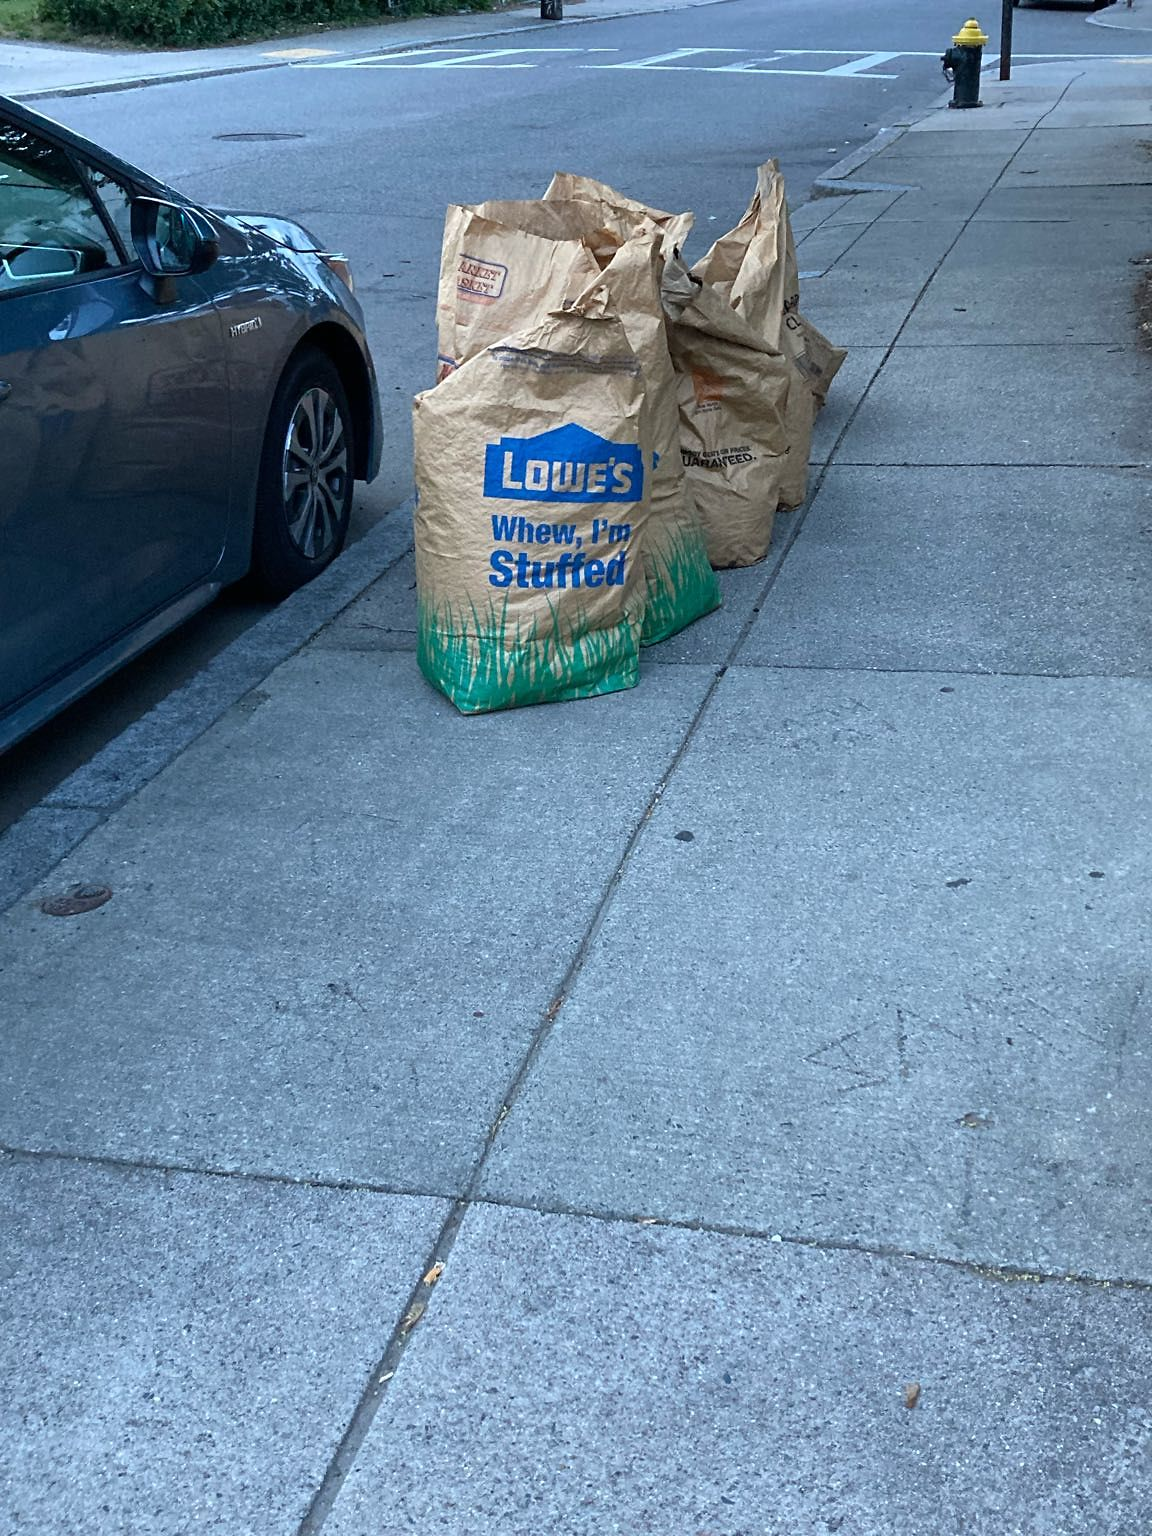 Yard waste was put out last Wednesday on trash day and it was not yard waste week. It is still in front of the 48 Allston street in Allston on the front sidewalk